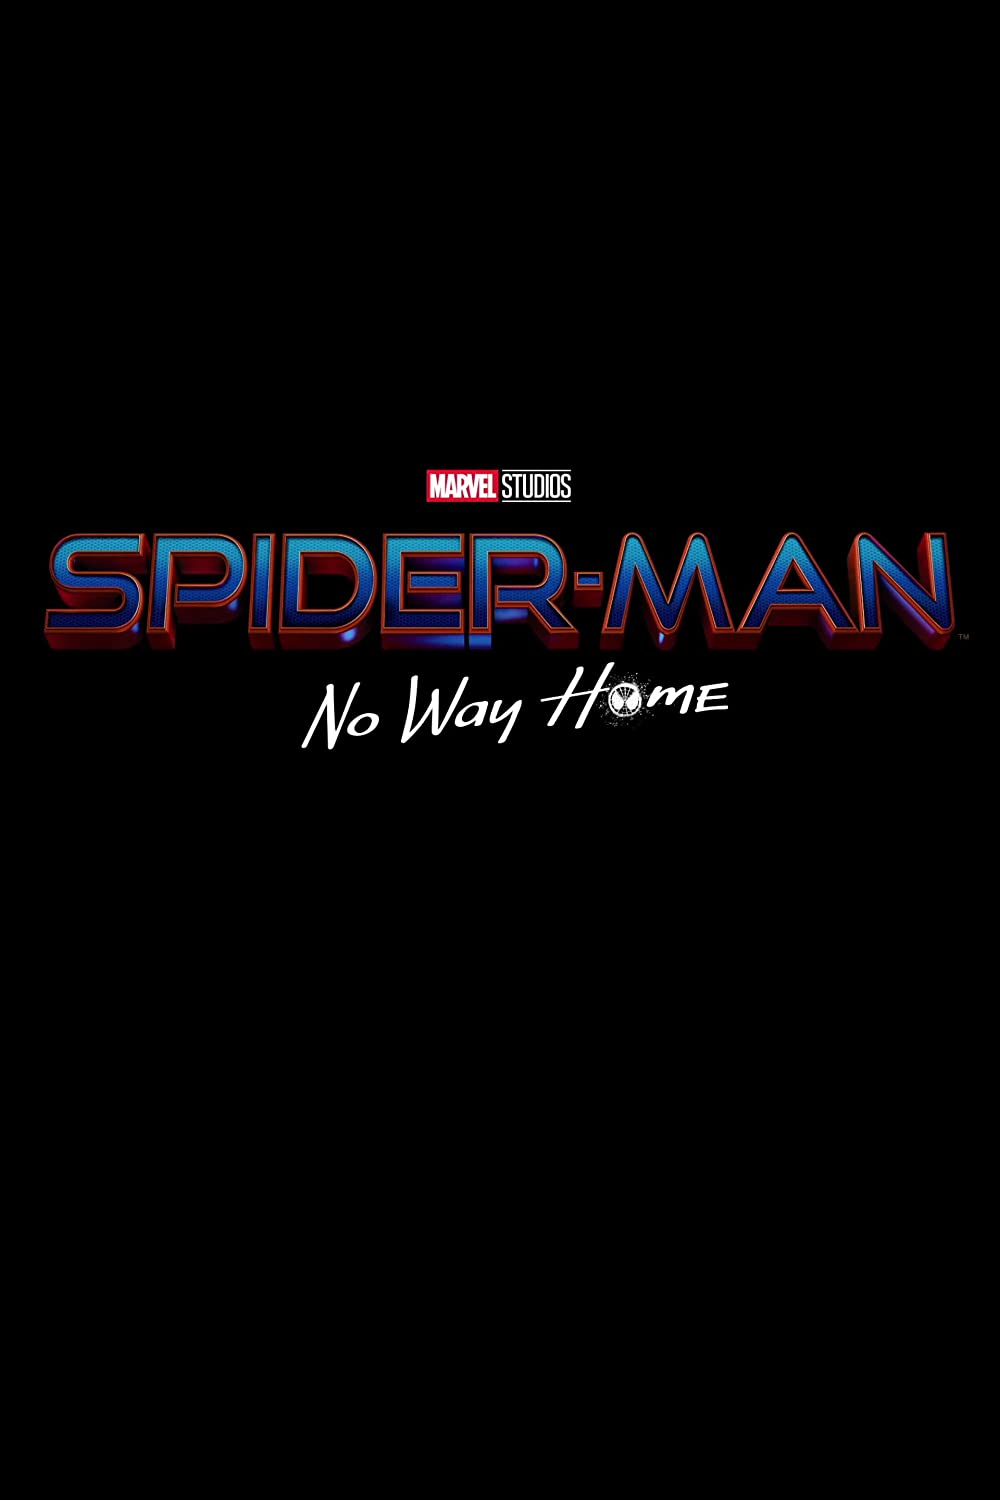 Poster for Spider-Man: No Way Home